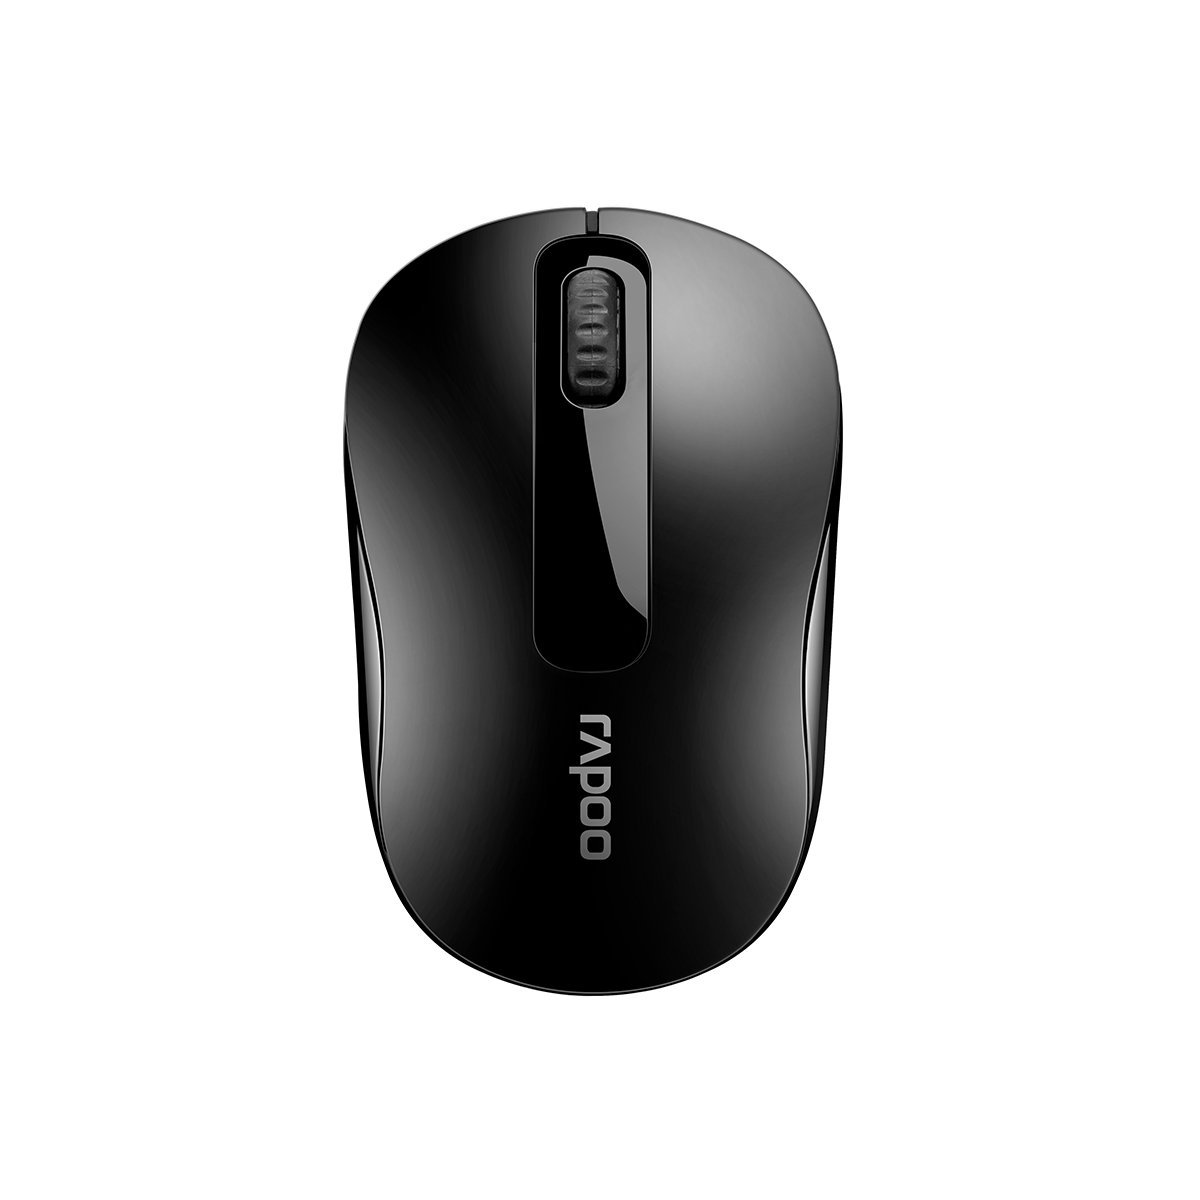 RAPOO M10 PLUS  2.4GHz Wireless Optical Mouse Black - 1000dpi 3Keys